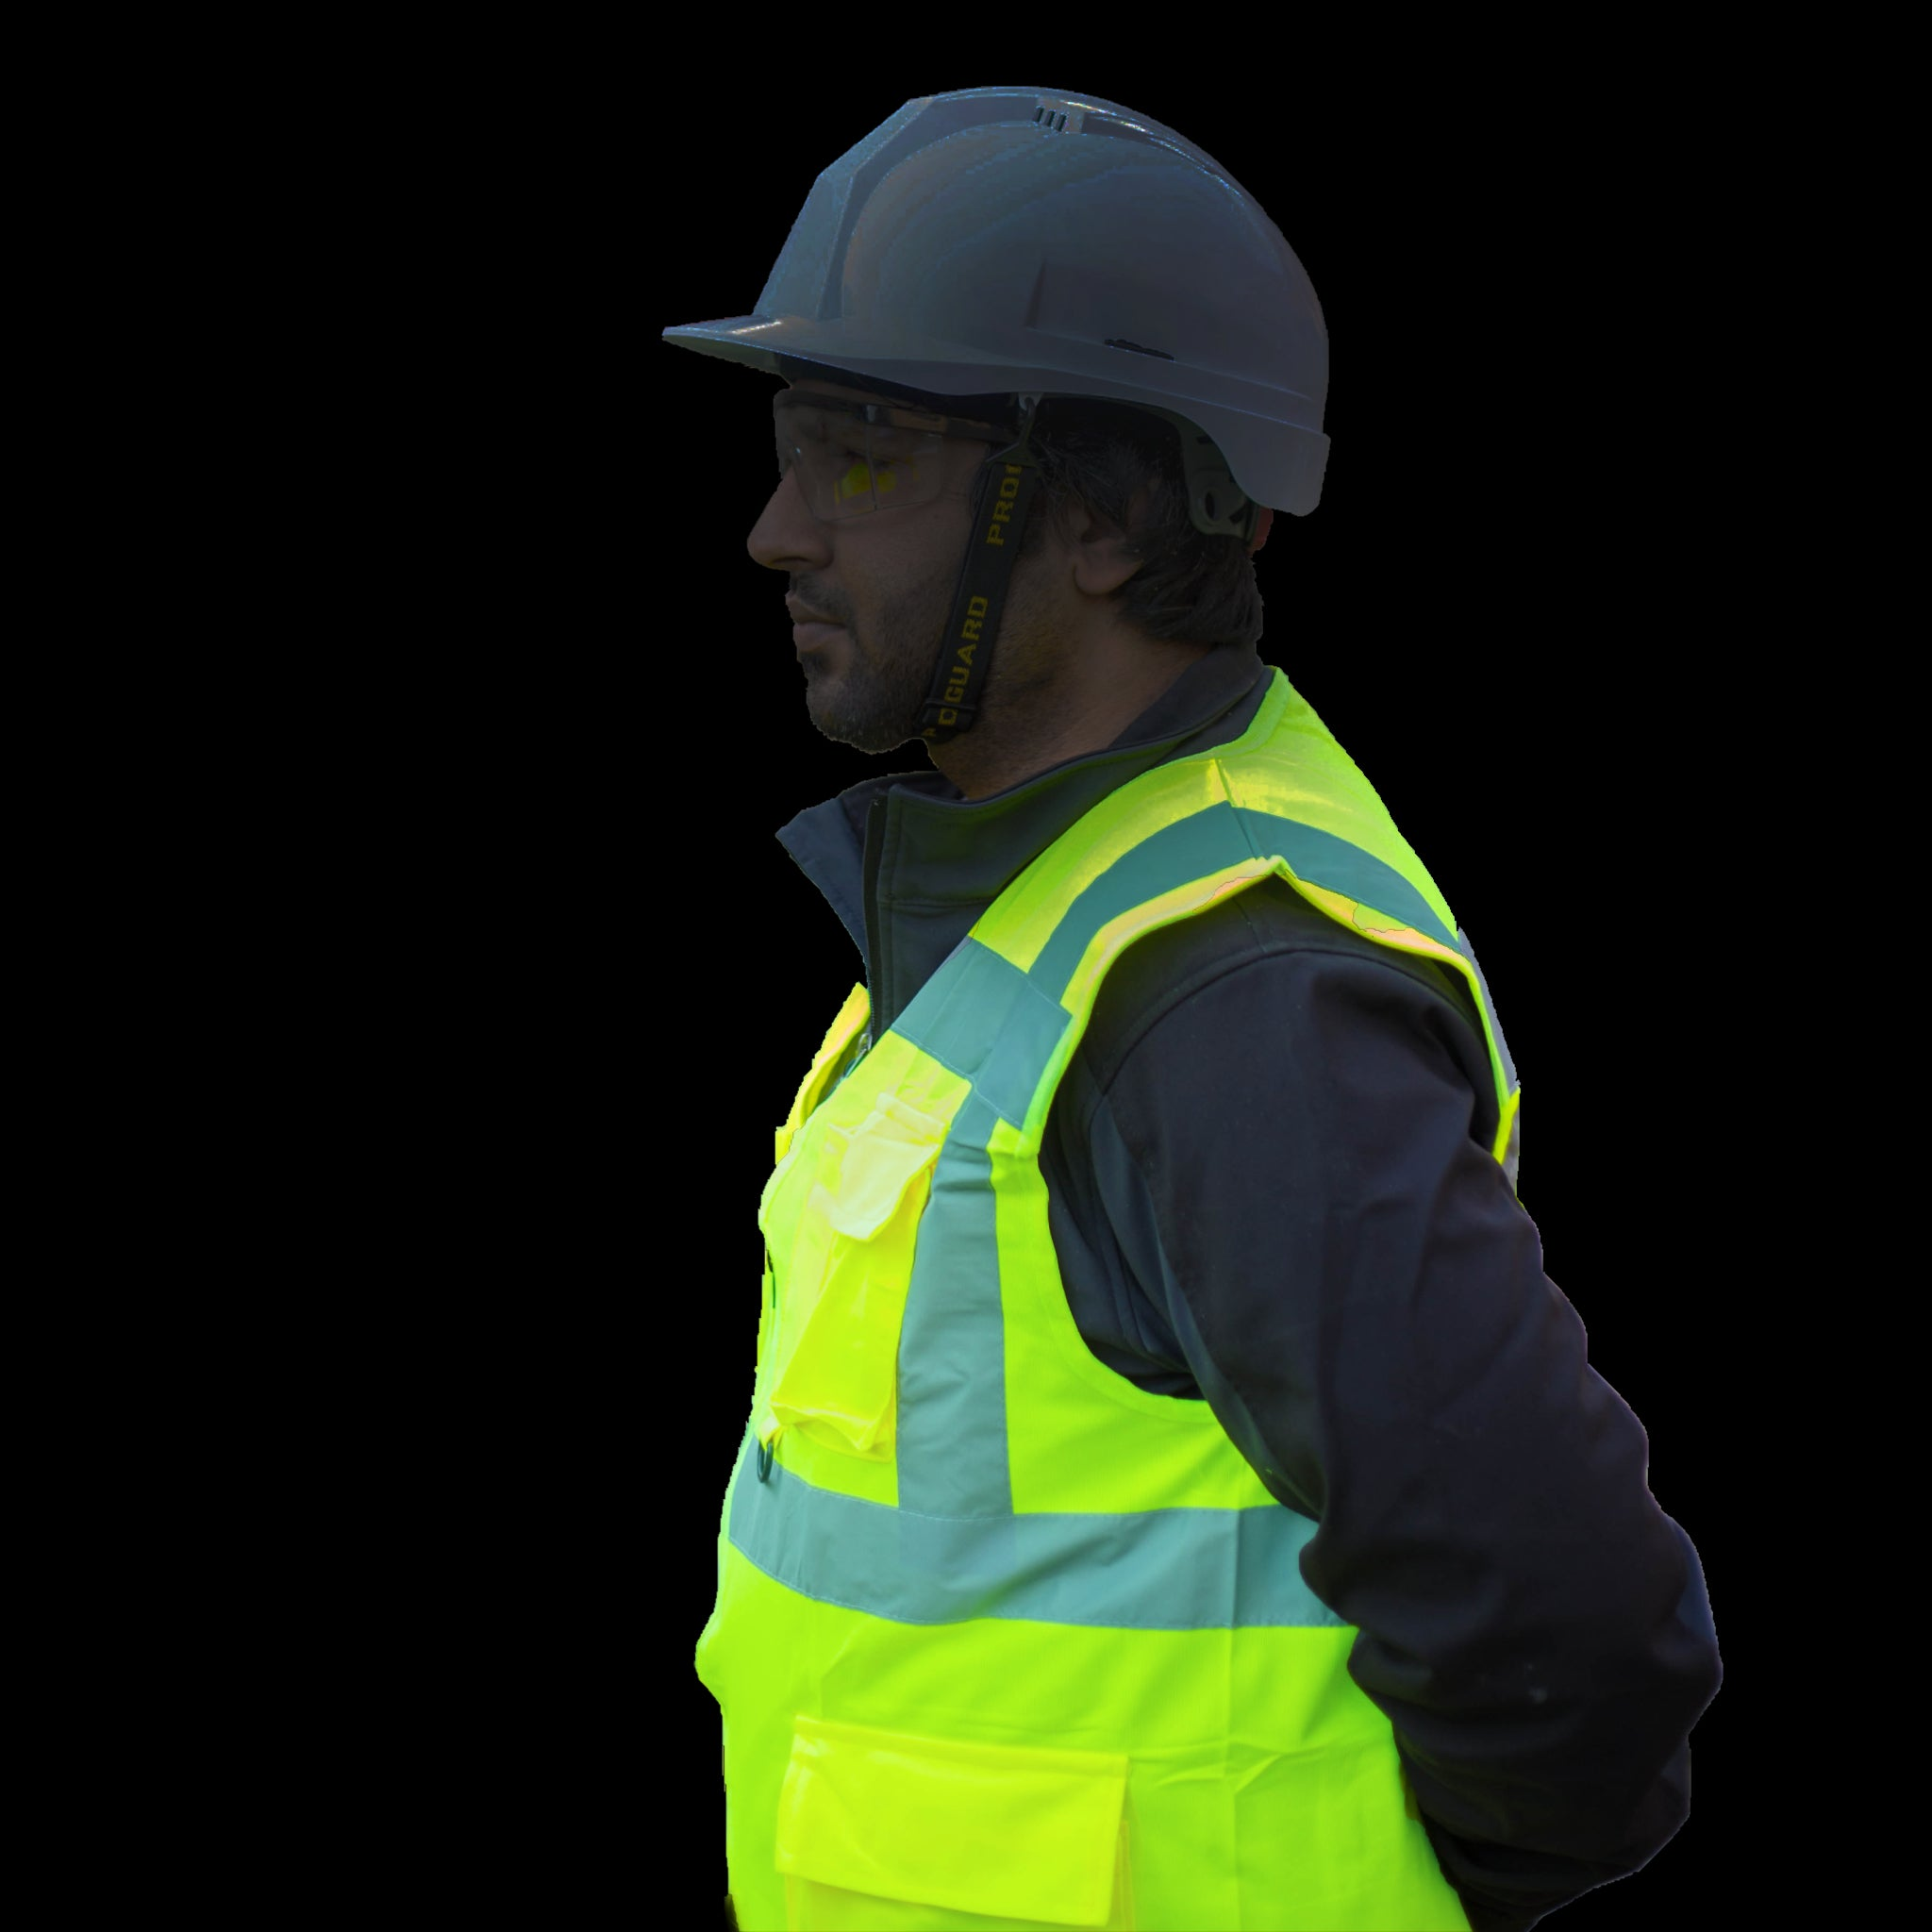 glow in the dark safety work vest